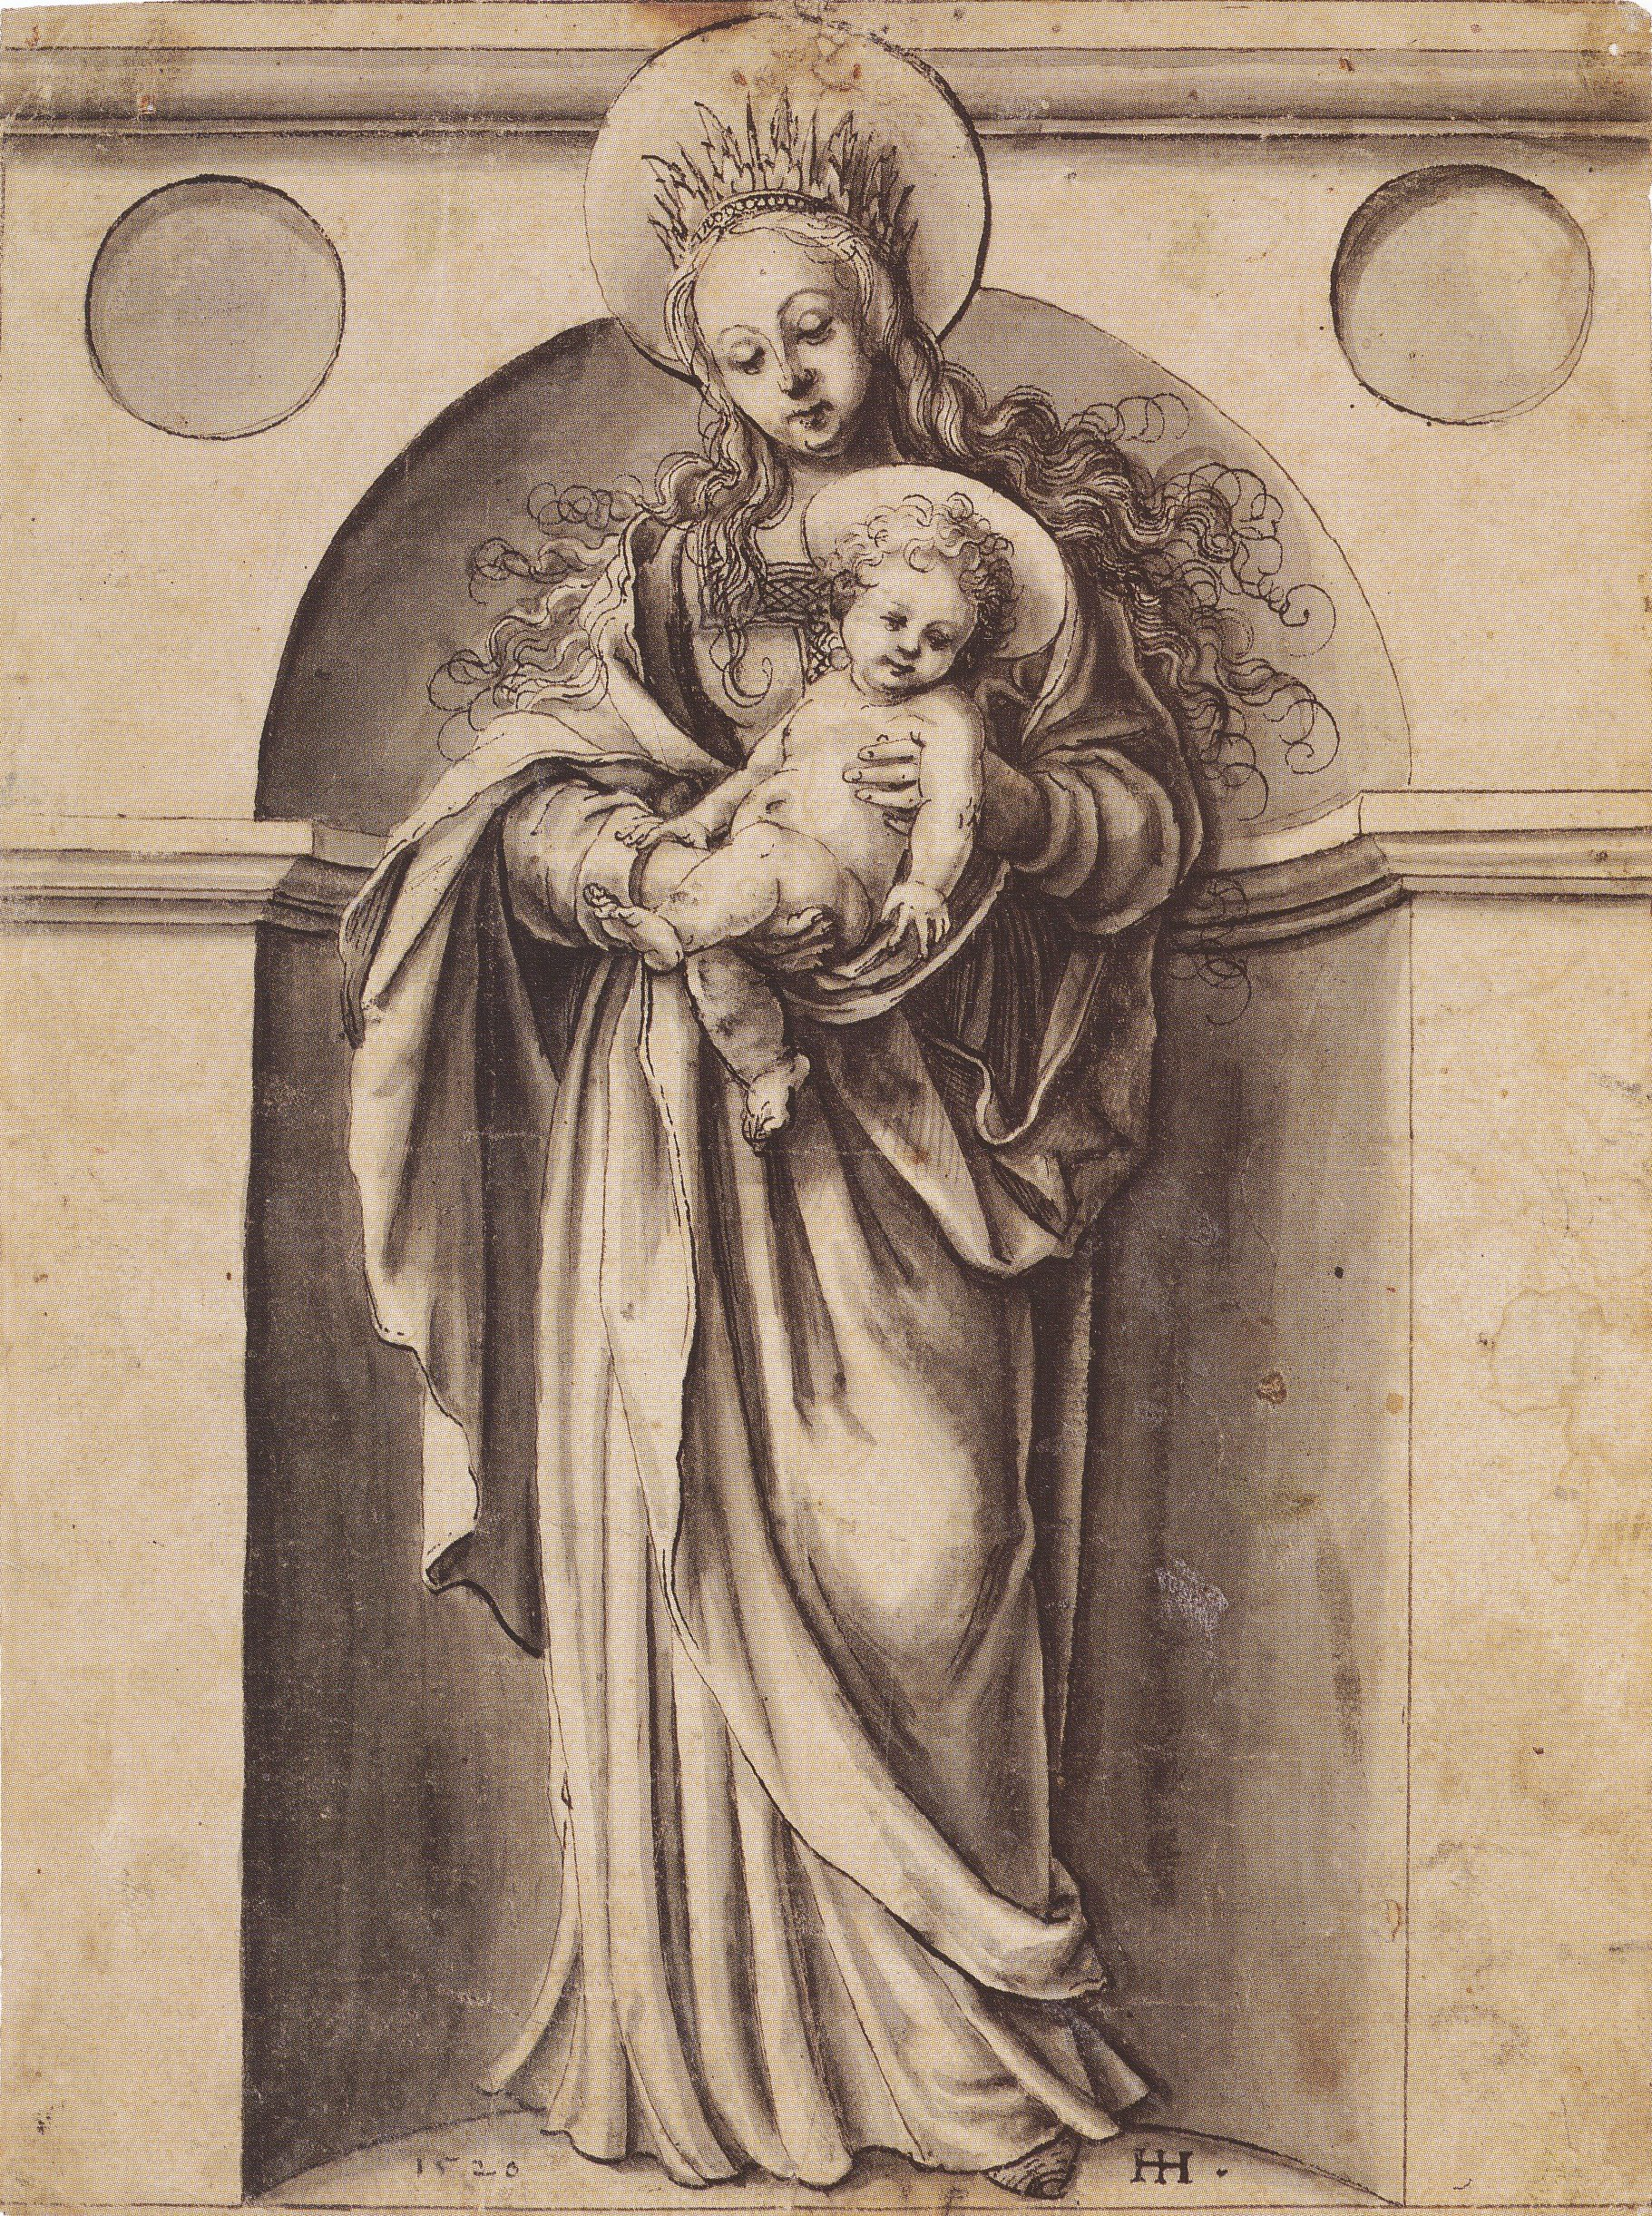 Virgin and Child. 1520